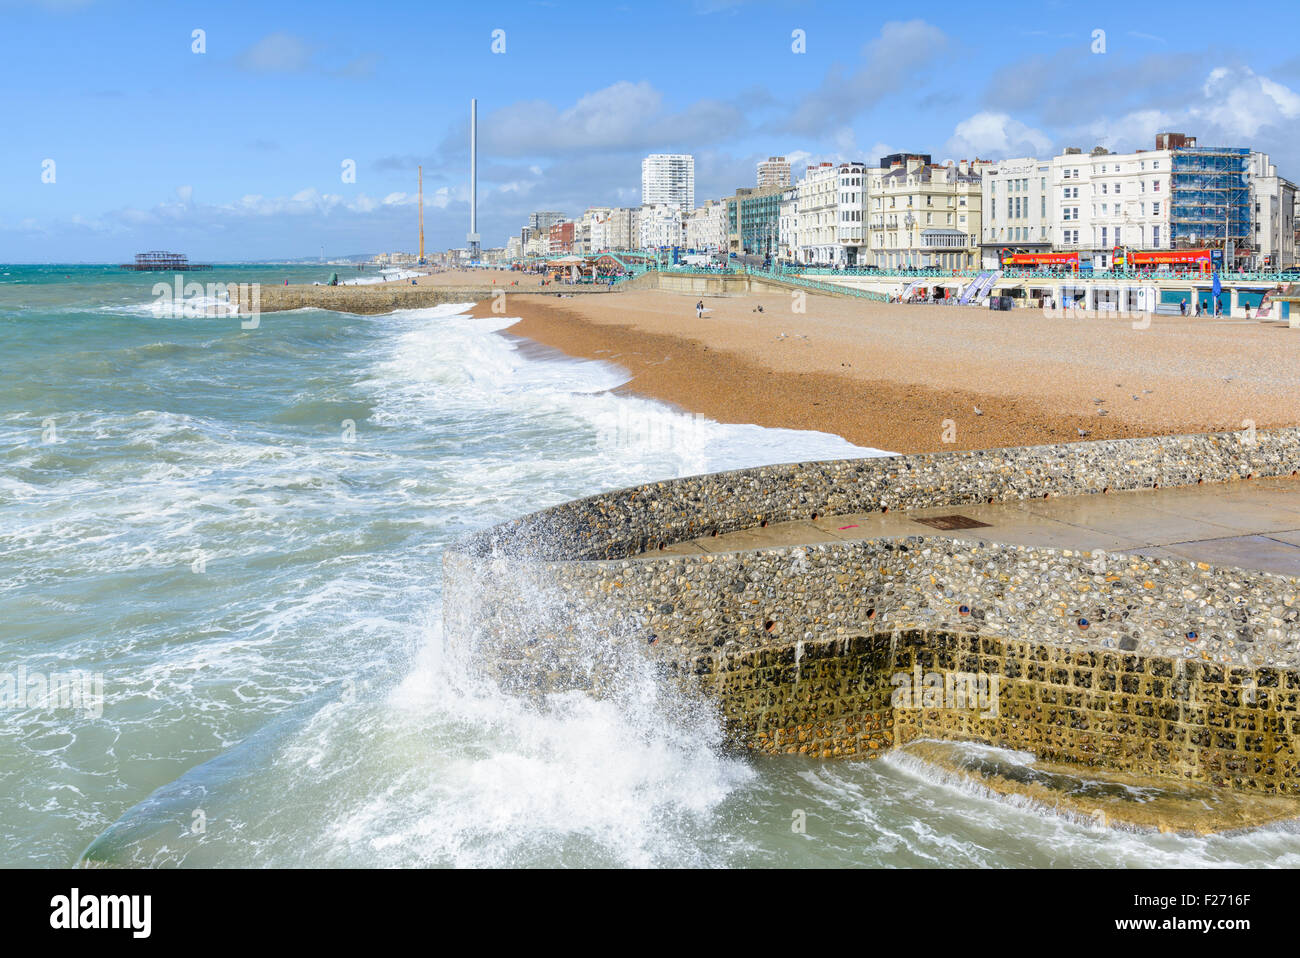 Brighton seafront. View along the seafront at Brighton, East Sussex, England, UK. Brighton coastline. Brighton seaside - Stock Image